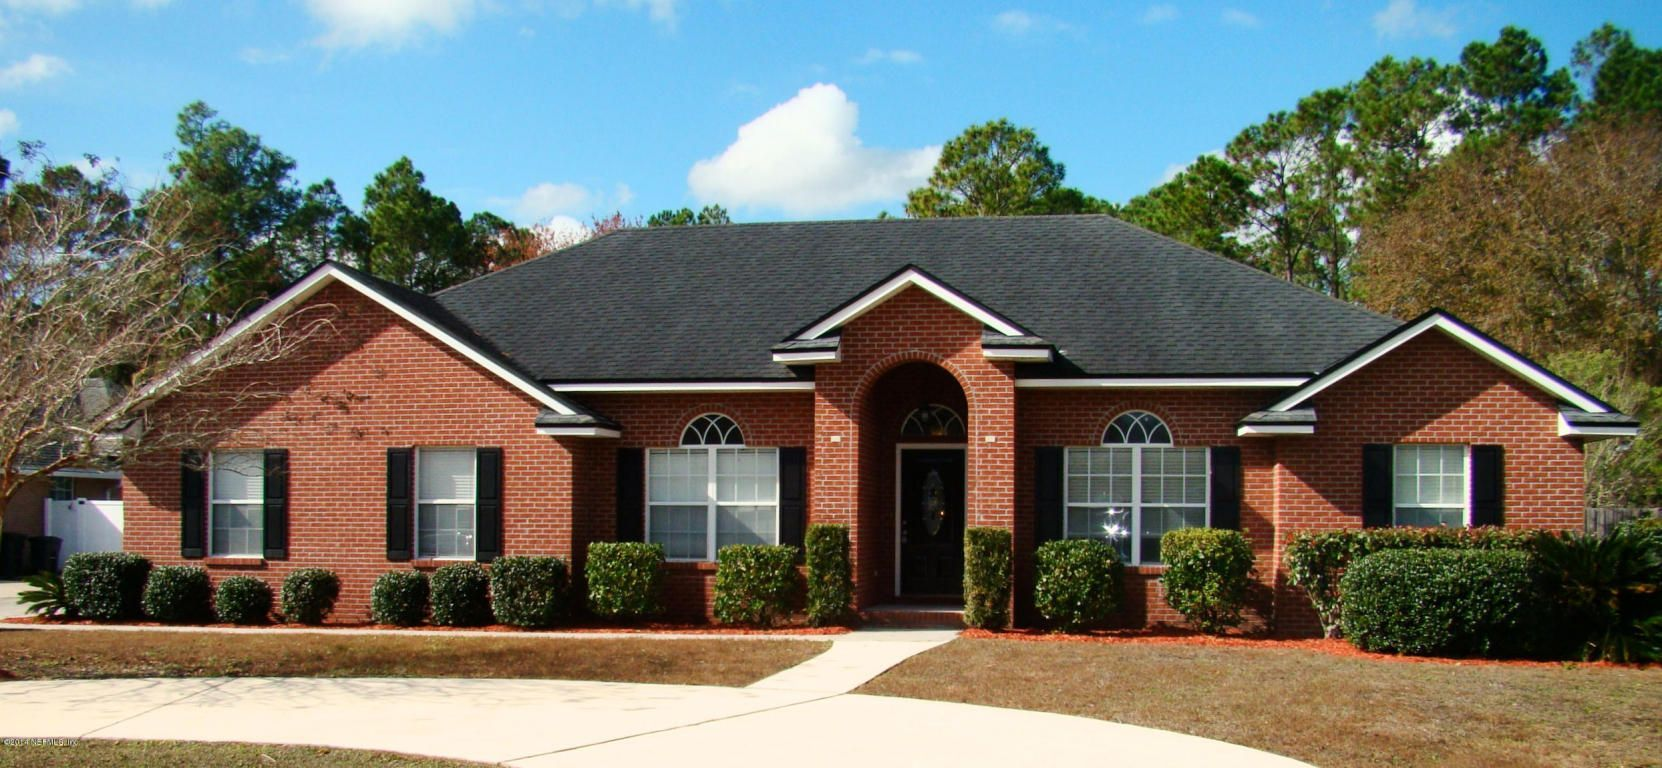 ALL BRICK HOME ON APPROX 1/2 ACRE LOT WITH CIRCLE